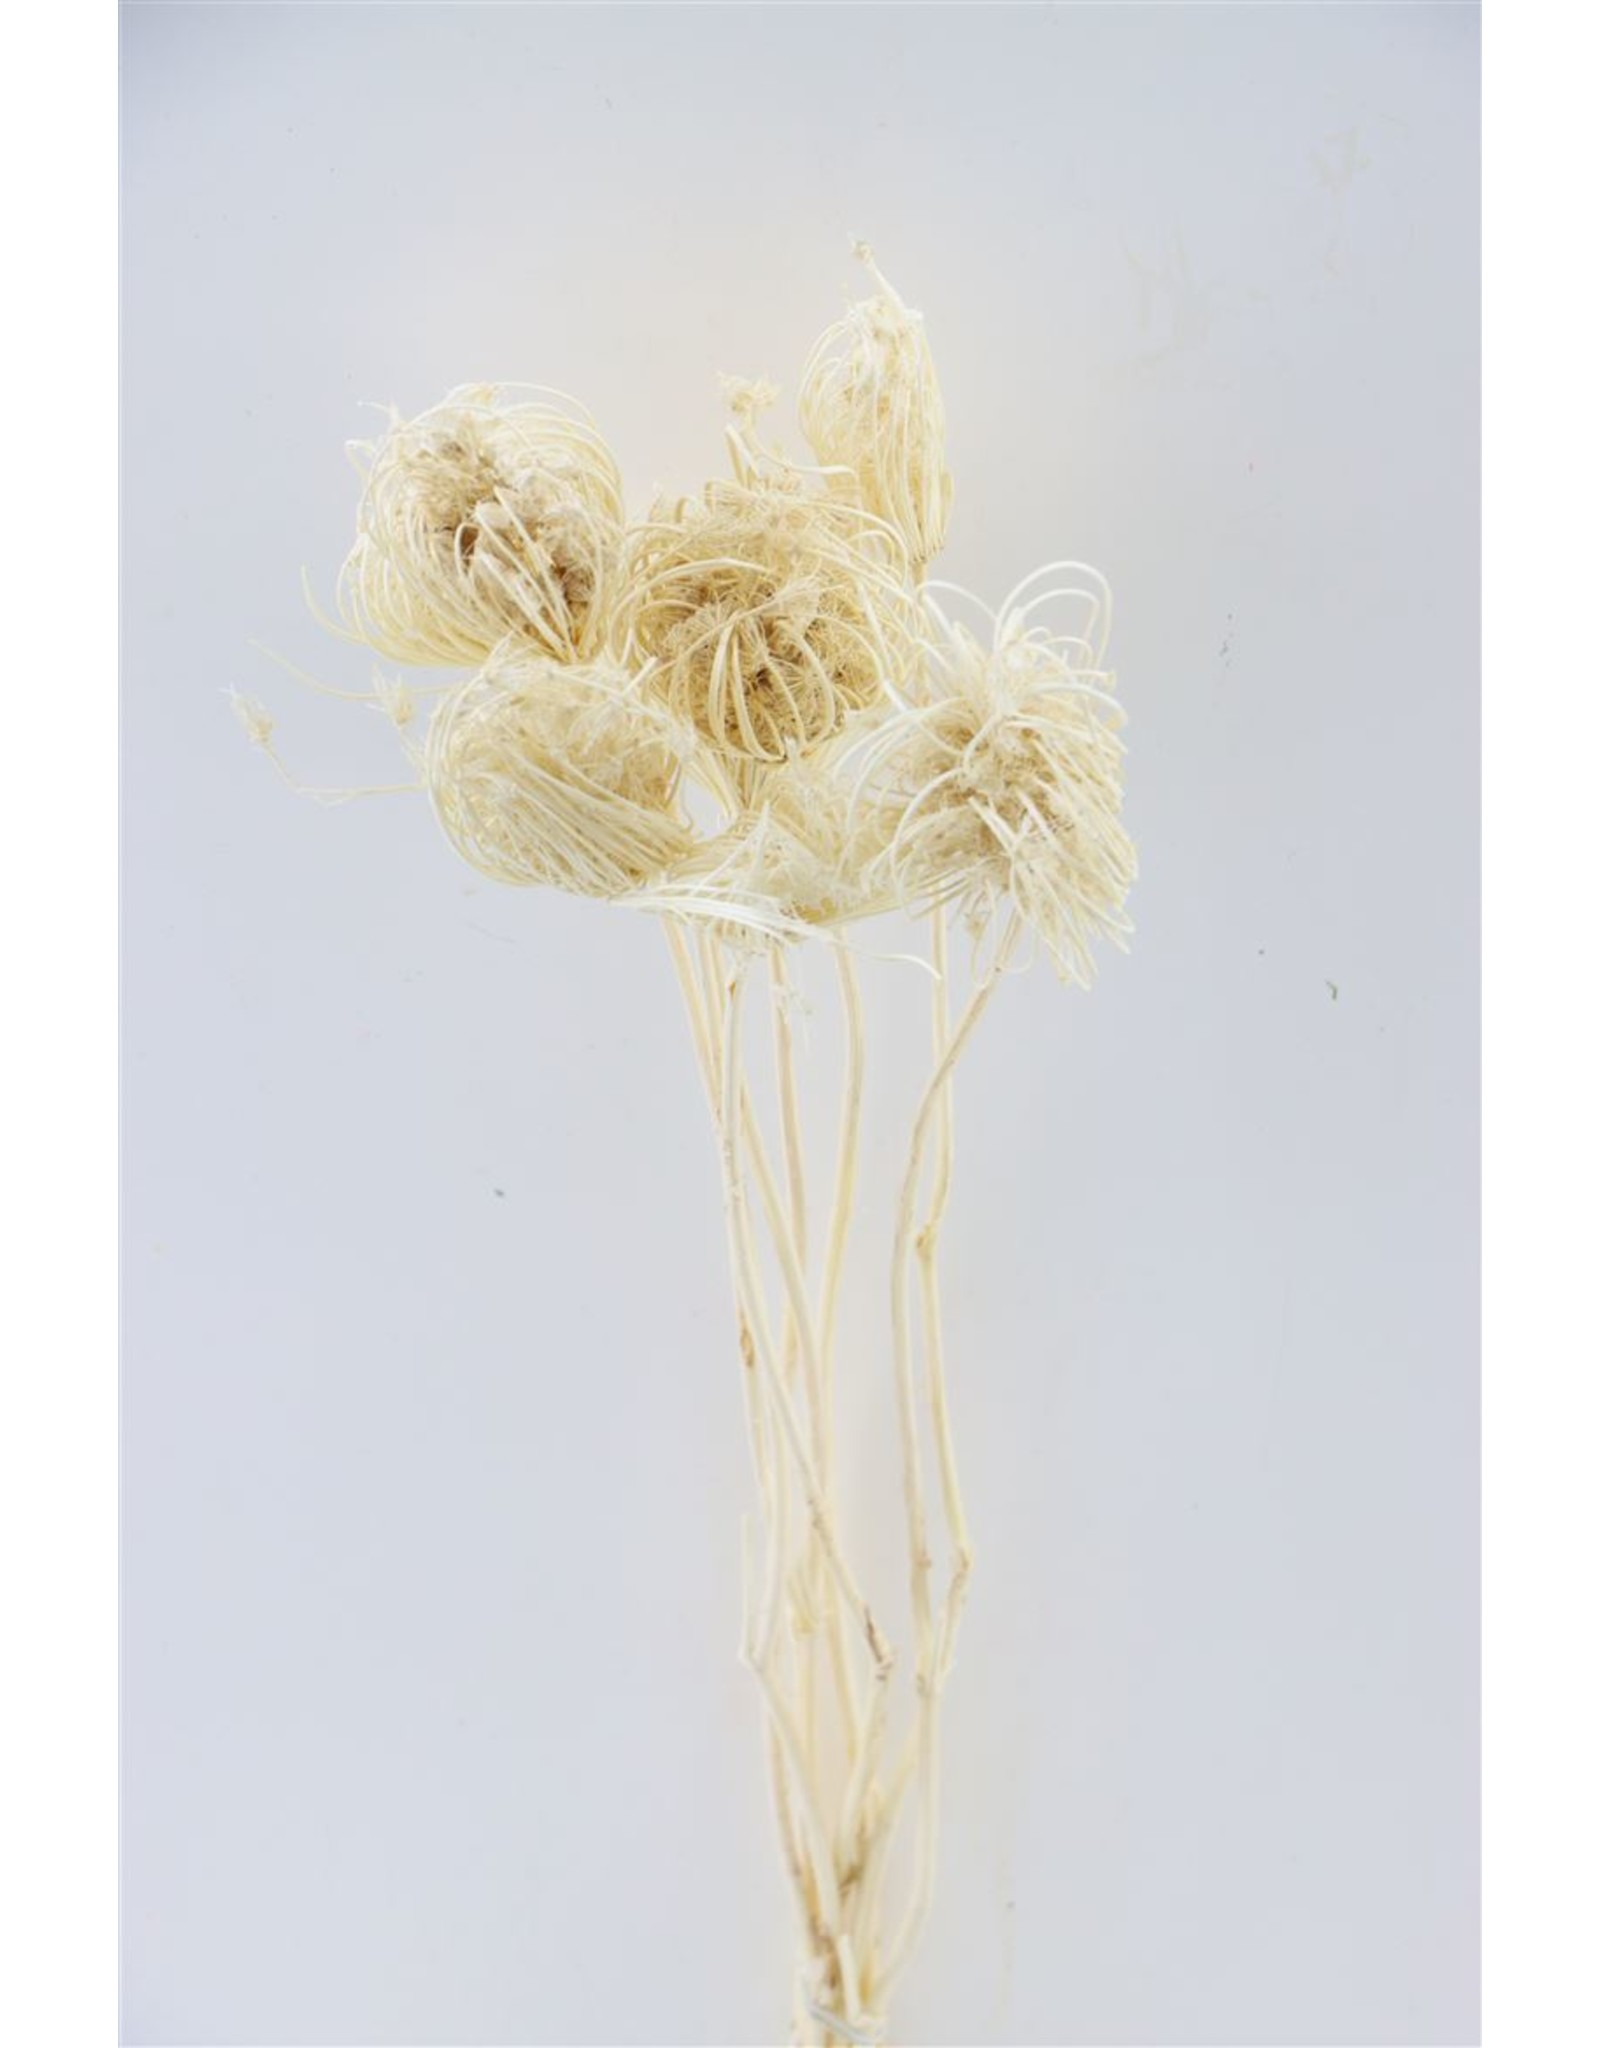 GF Dried Dill Seed Bleached Bunch x 2